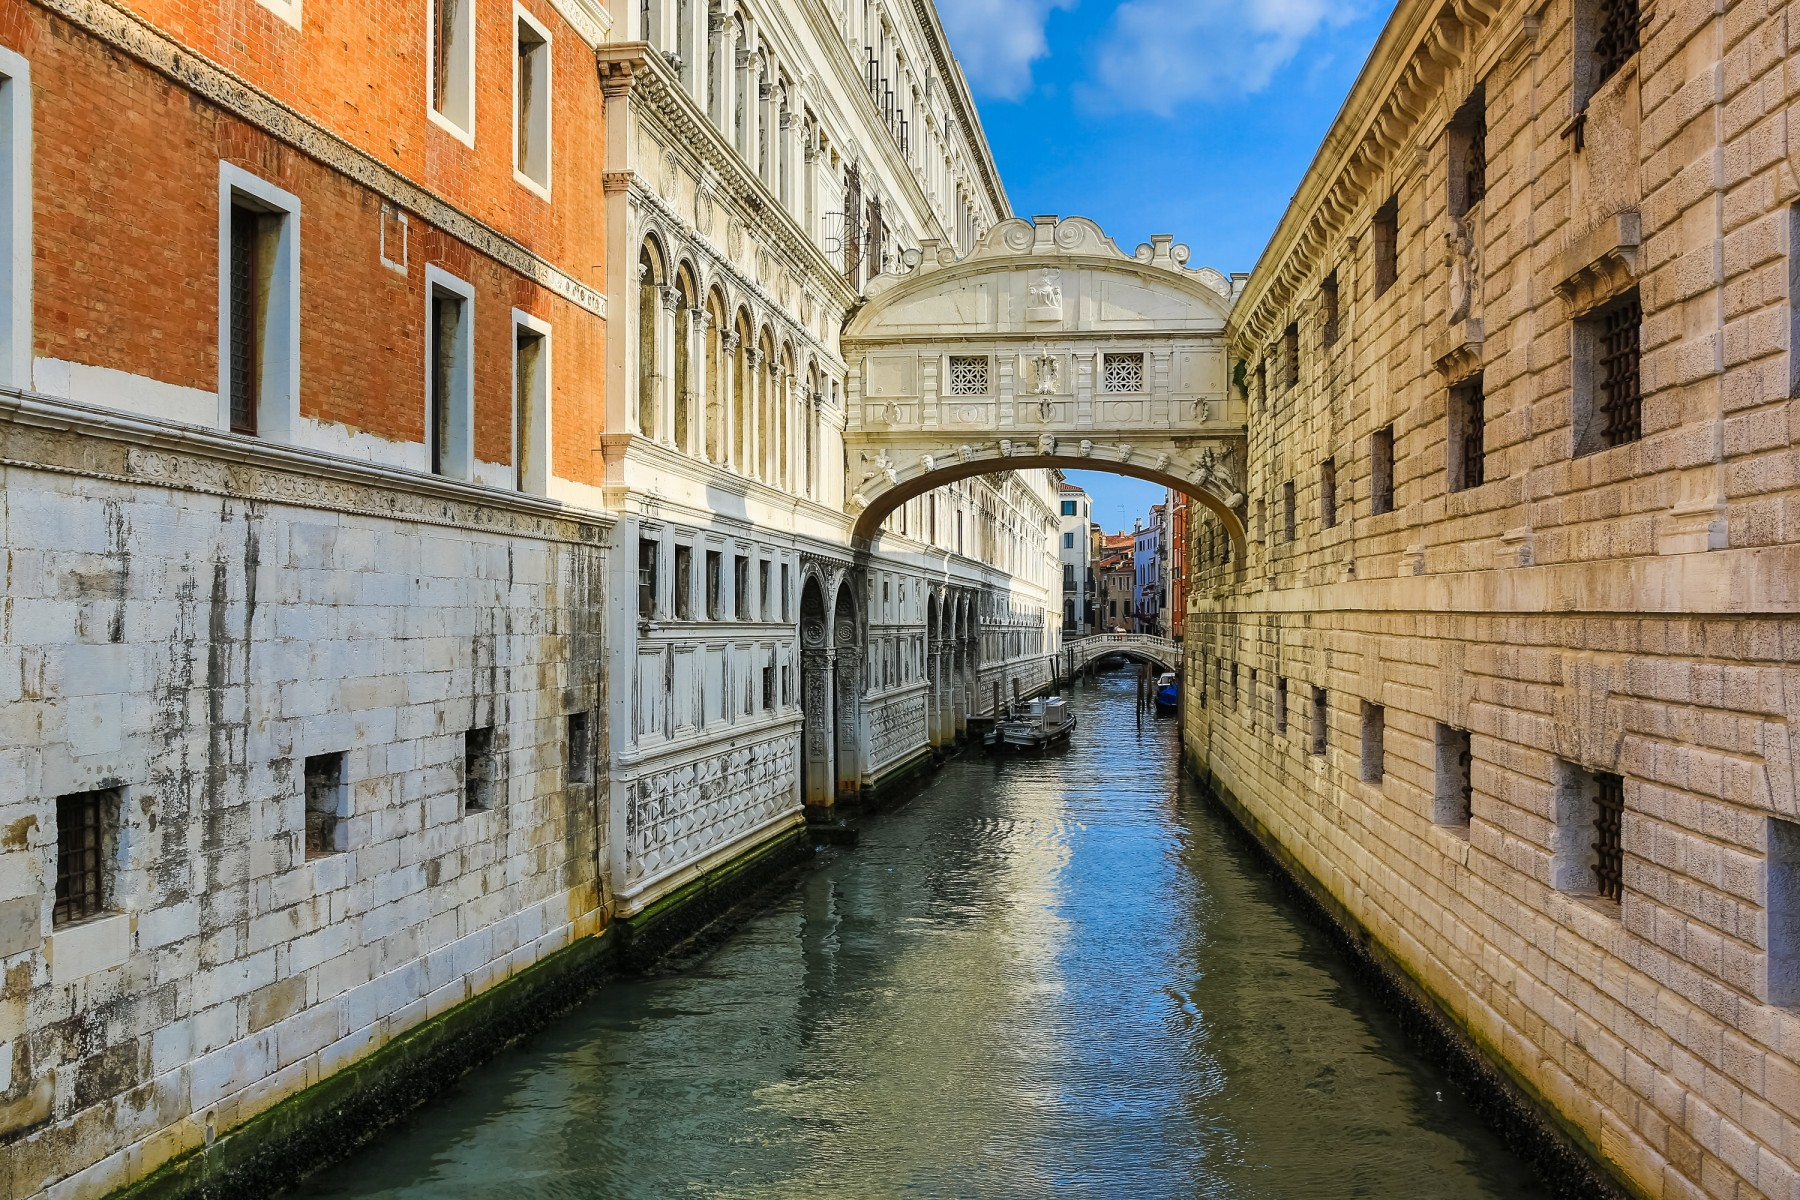 9_La Porta D'Oriente B&B - The Bridge of Sighs